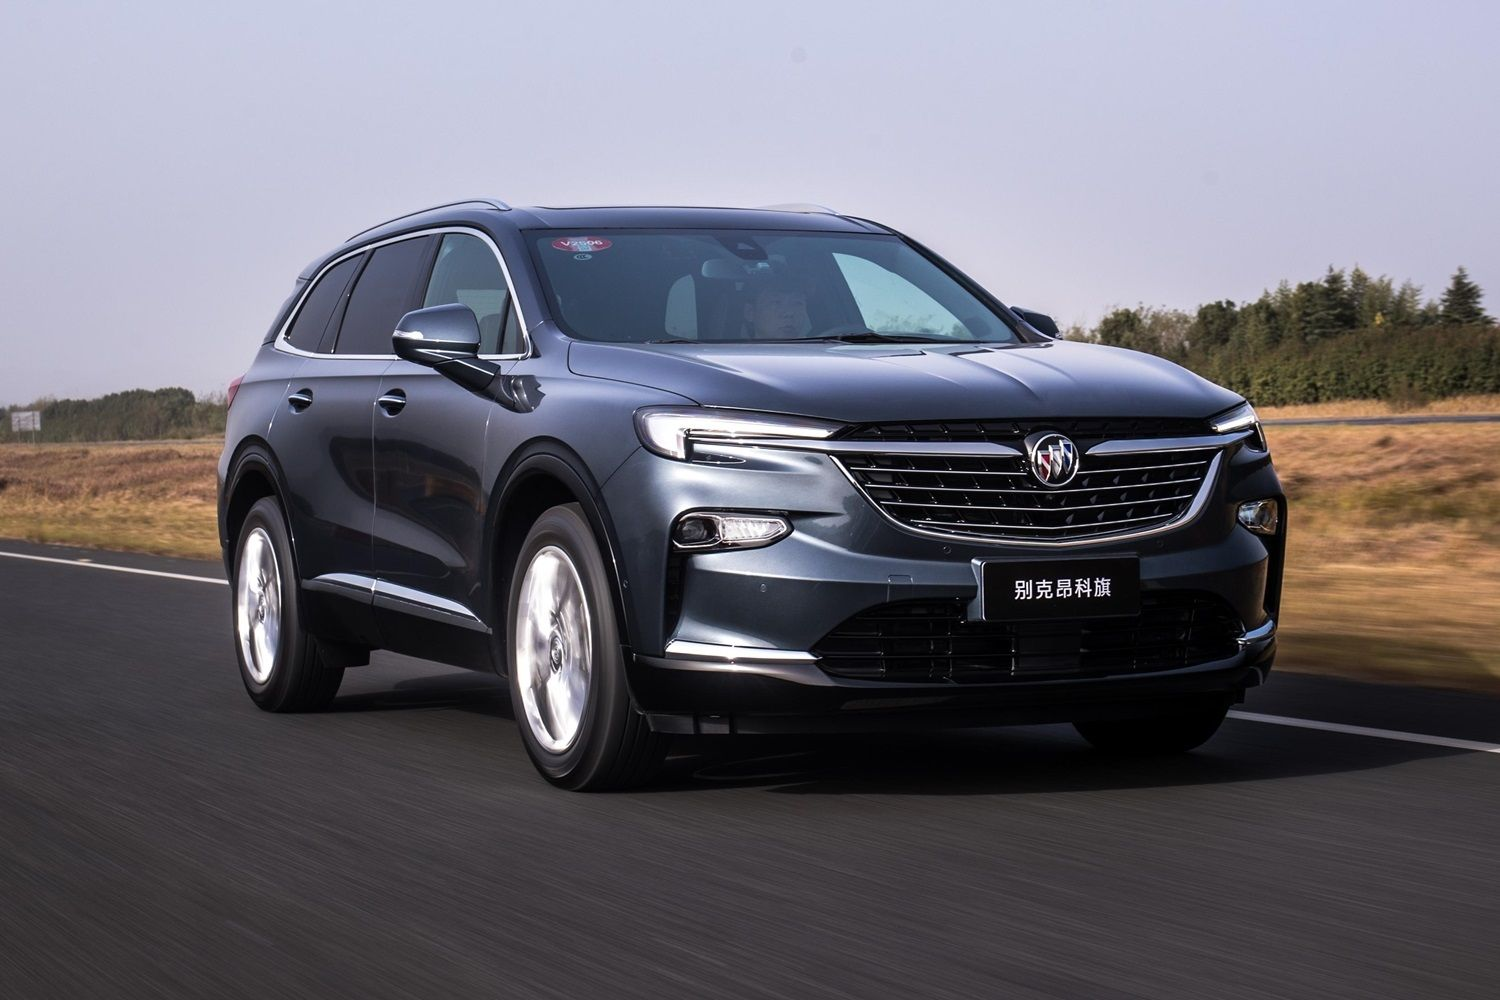 2021 Buick Enclave Gets New Entry Level Trim In China Buick Enclave Buick Enclave